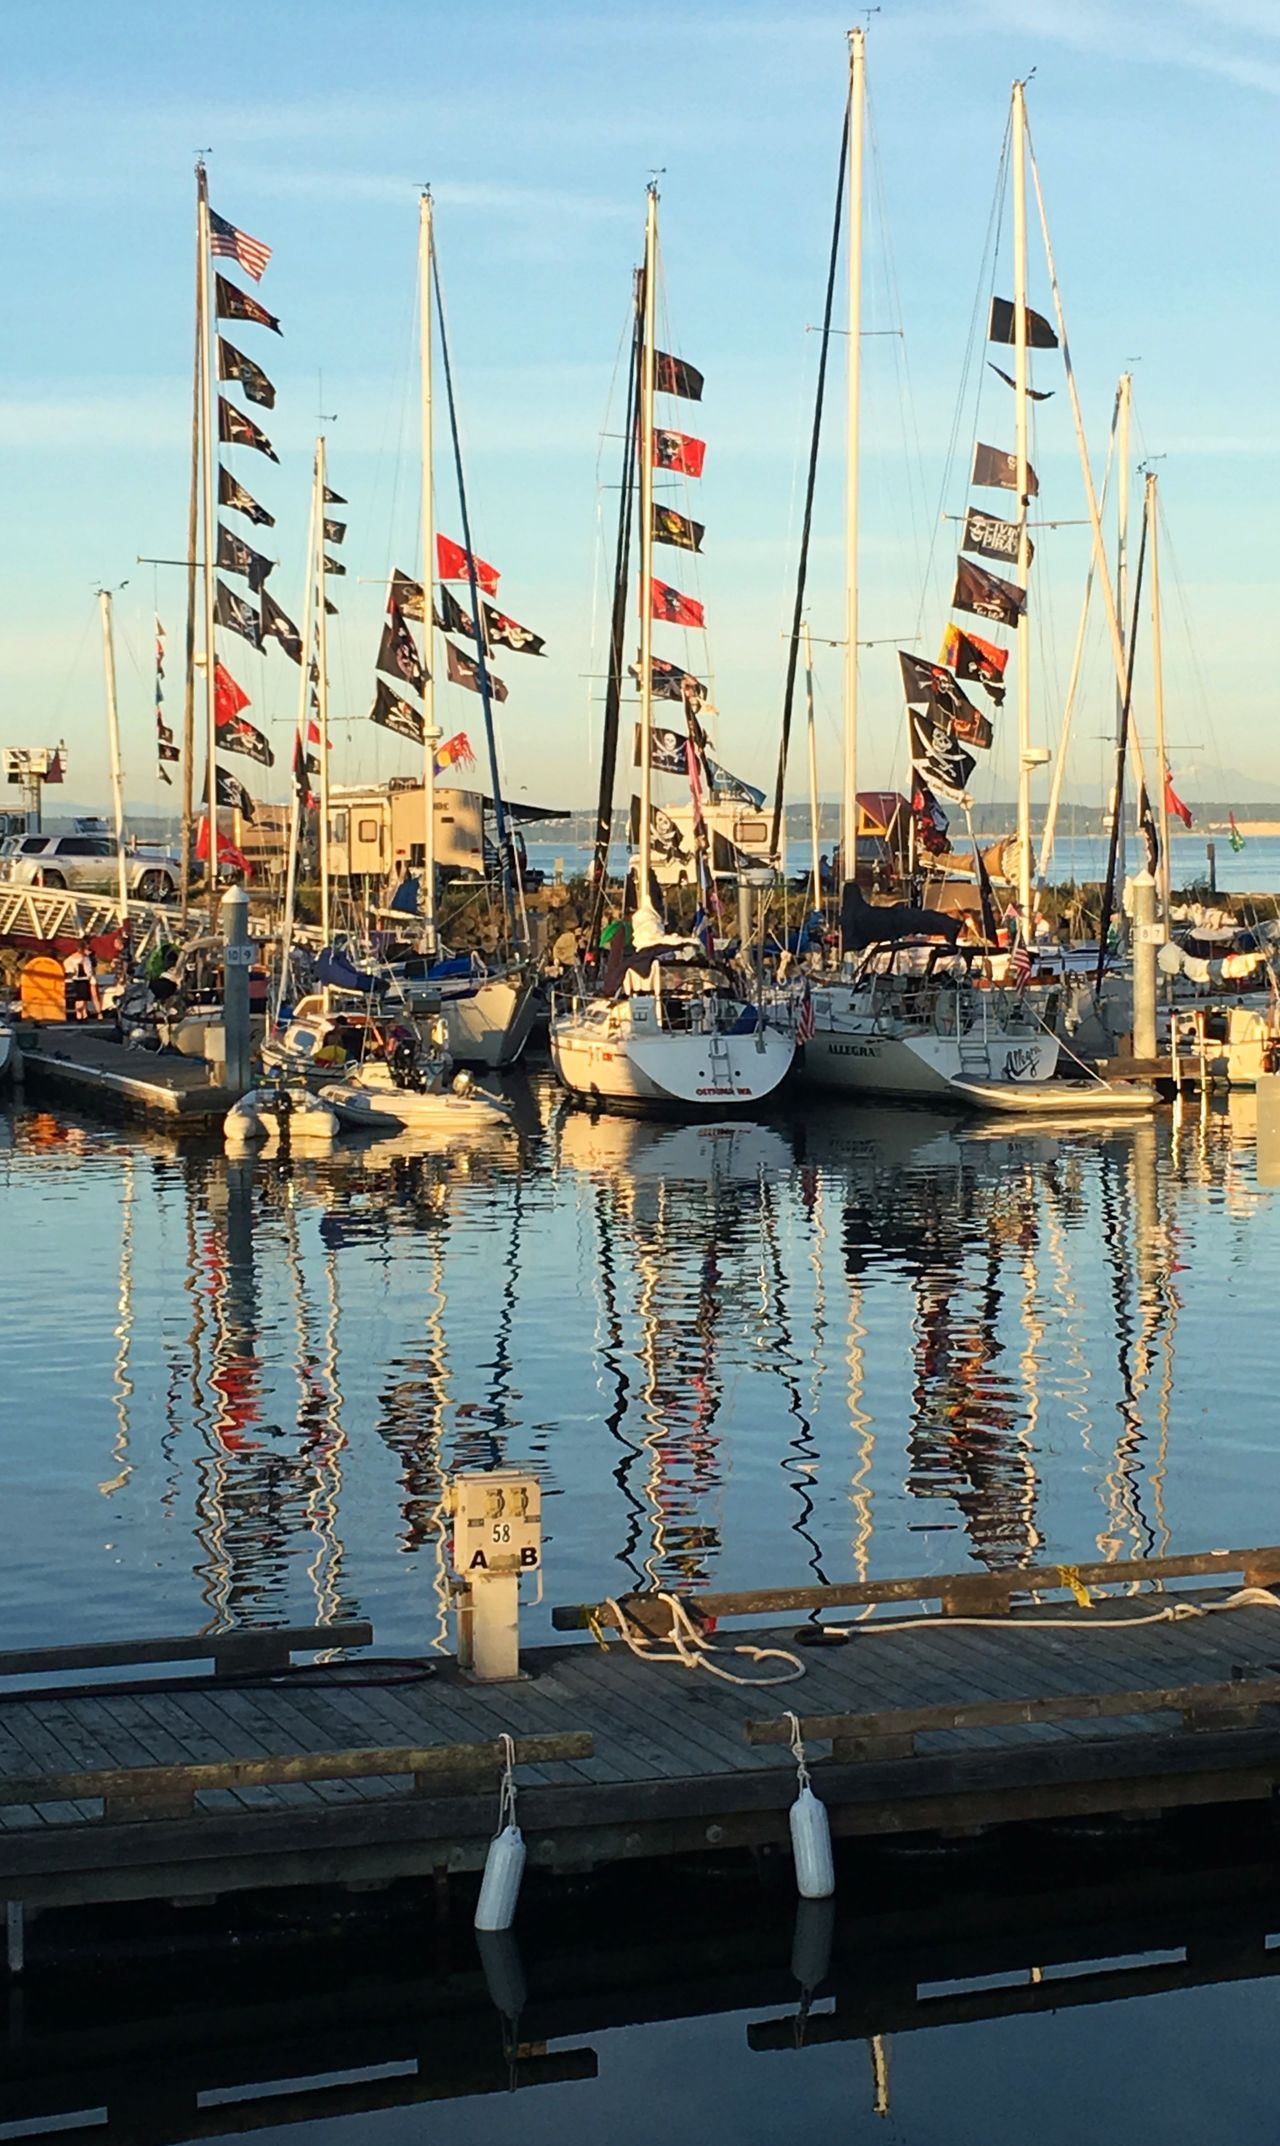 Beautiful stock photos of piraten, reflection, water, mast, nautical vessel